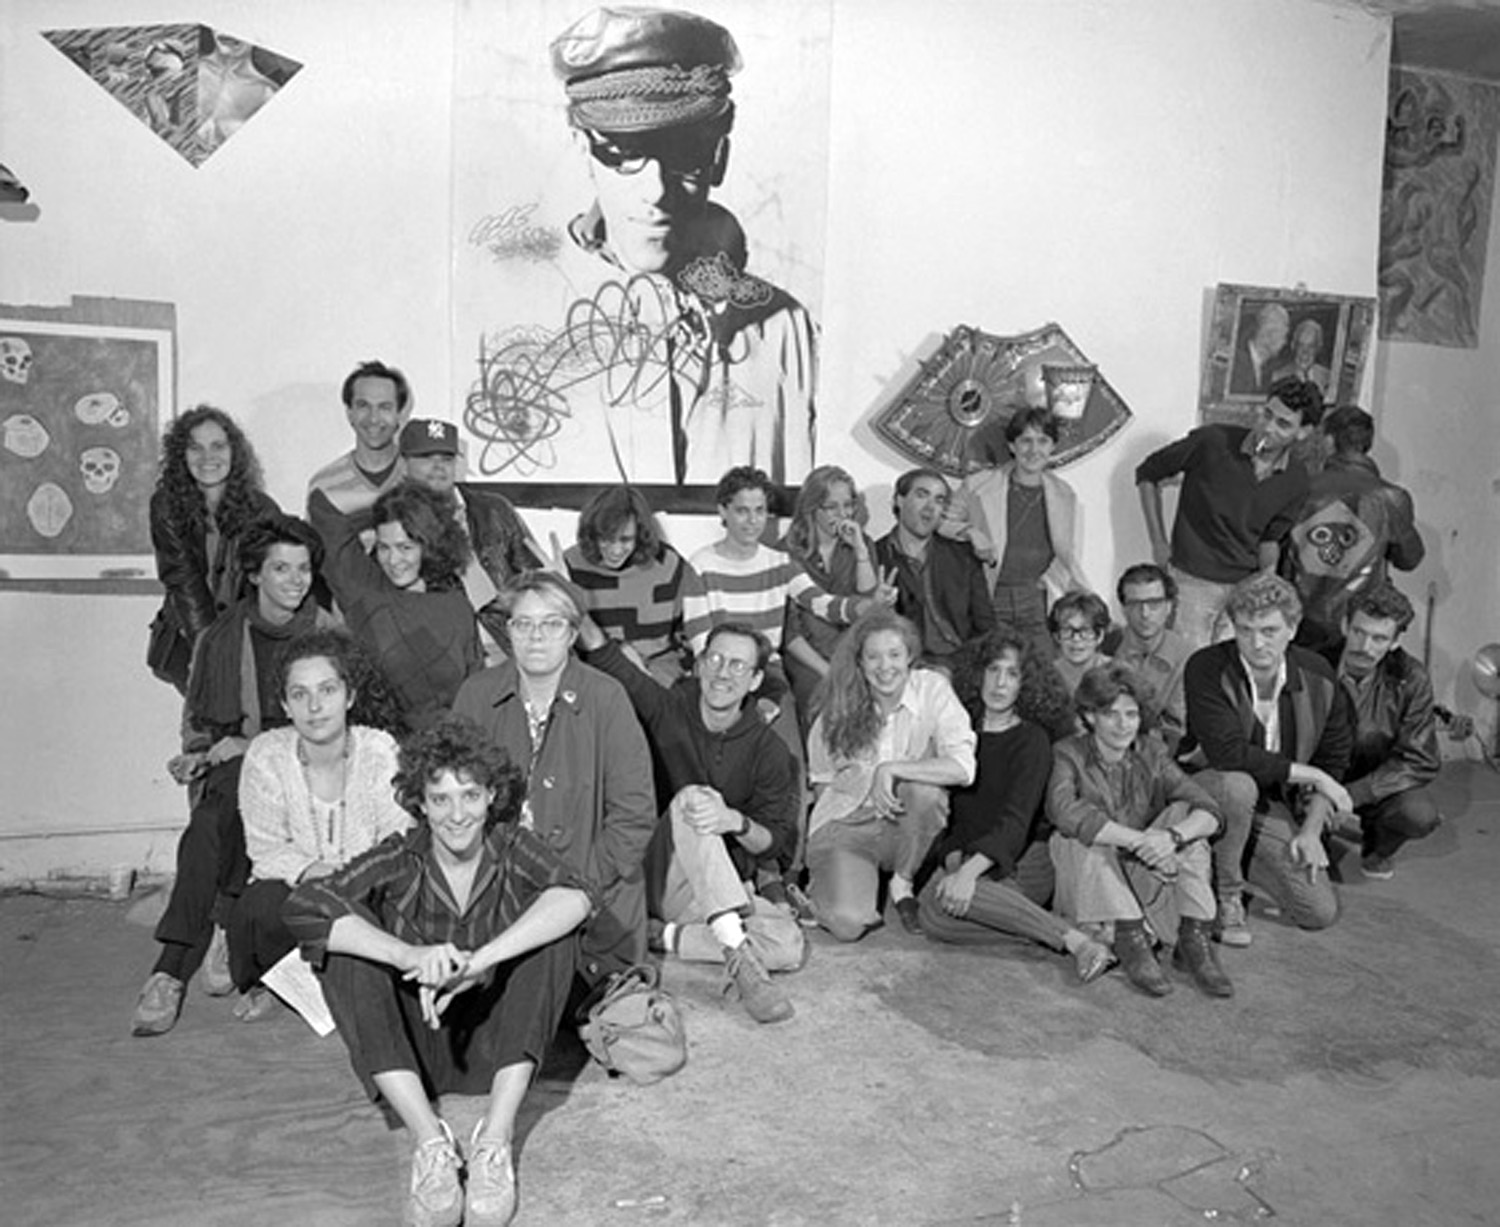 COLAB AT ABC NO RIO CIRCA 1984  (front) Andrea Callard; (2nd row) Kiki Smith, Sally White, Tom Warren, Becky Howland, Jolie Stahl, Bebe Smith, Walter Robinson, Alan Moore; (3rd row -left) Julie Harrison, Ellen Cooper; (3rd row –right) Maria Sutcliffe, Matthew Geller, Jim Sutliffe (standing), Bobby G (back to the camera); (back row) Jody Culkin, Brian Piersol, Joseph Nechvatal, Cara Brownell, Cara Perlman, Brigitte Engler, Doug Mulaire, Mindy Stevenson. Photo by Peter Sumner Walton Bellamy